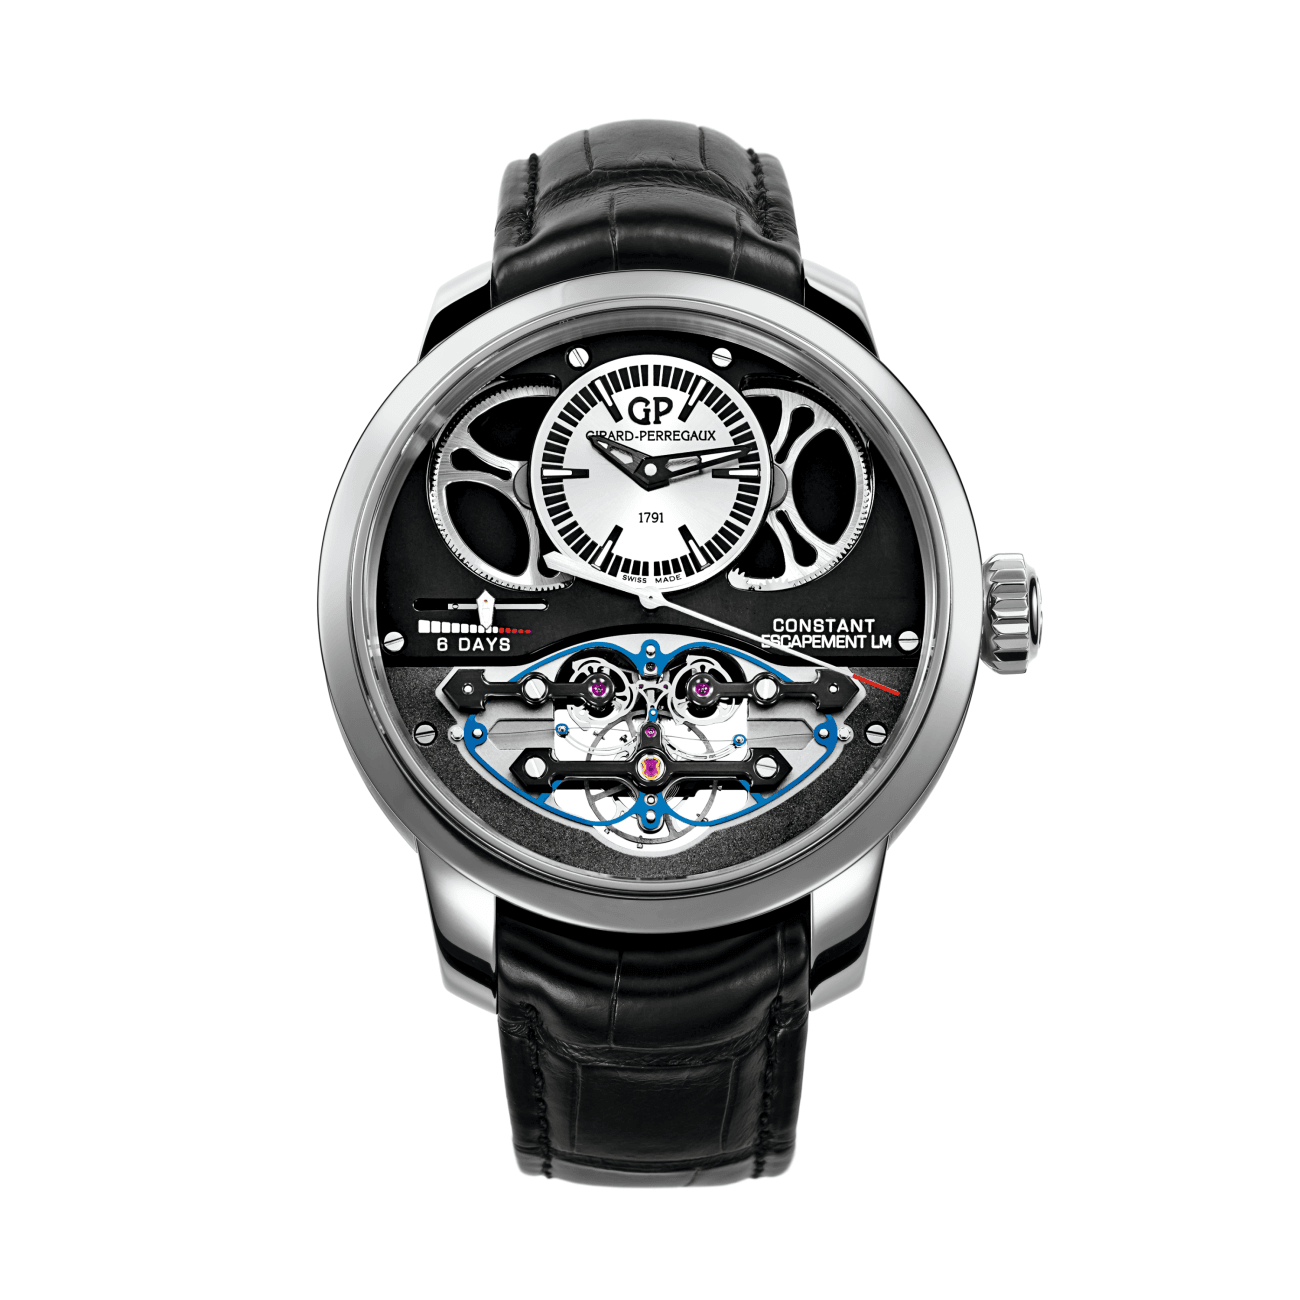 Girard-Perregaux Watches - CONSTANT ESCAPEMENT L.M. | Manfredi Jewels